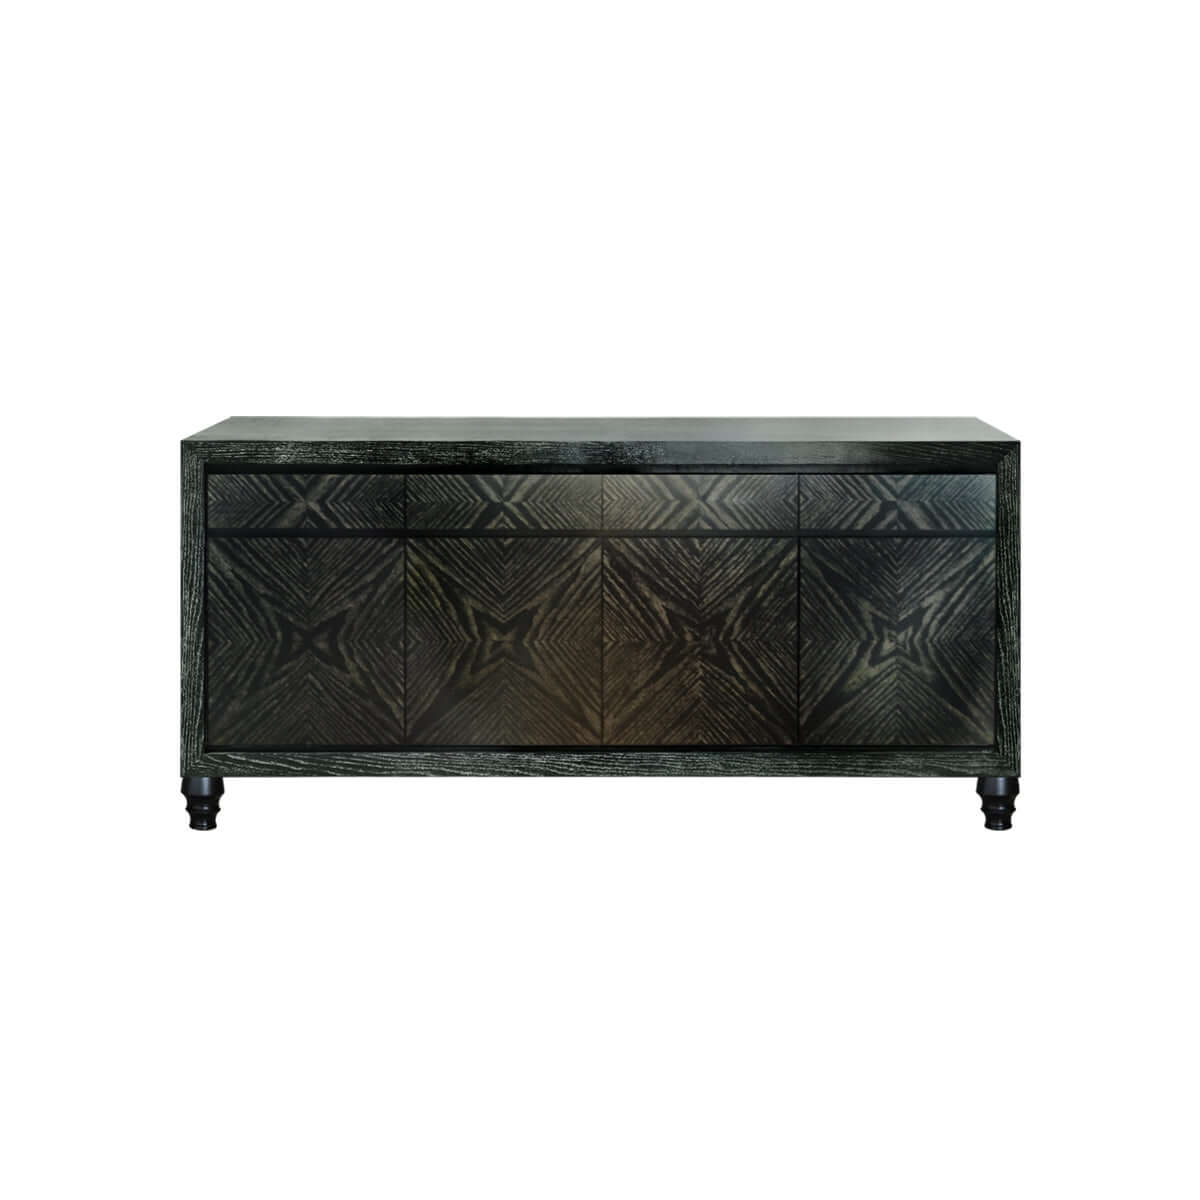 gold grained sideboard available online or in store